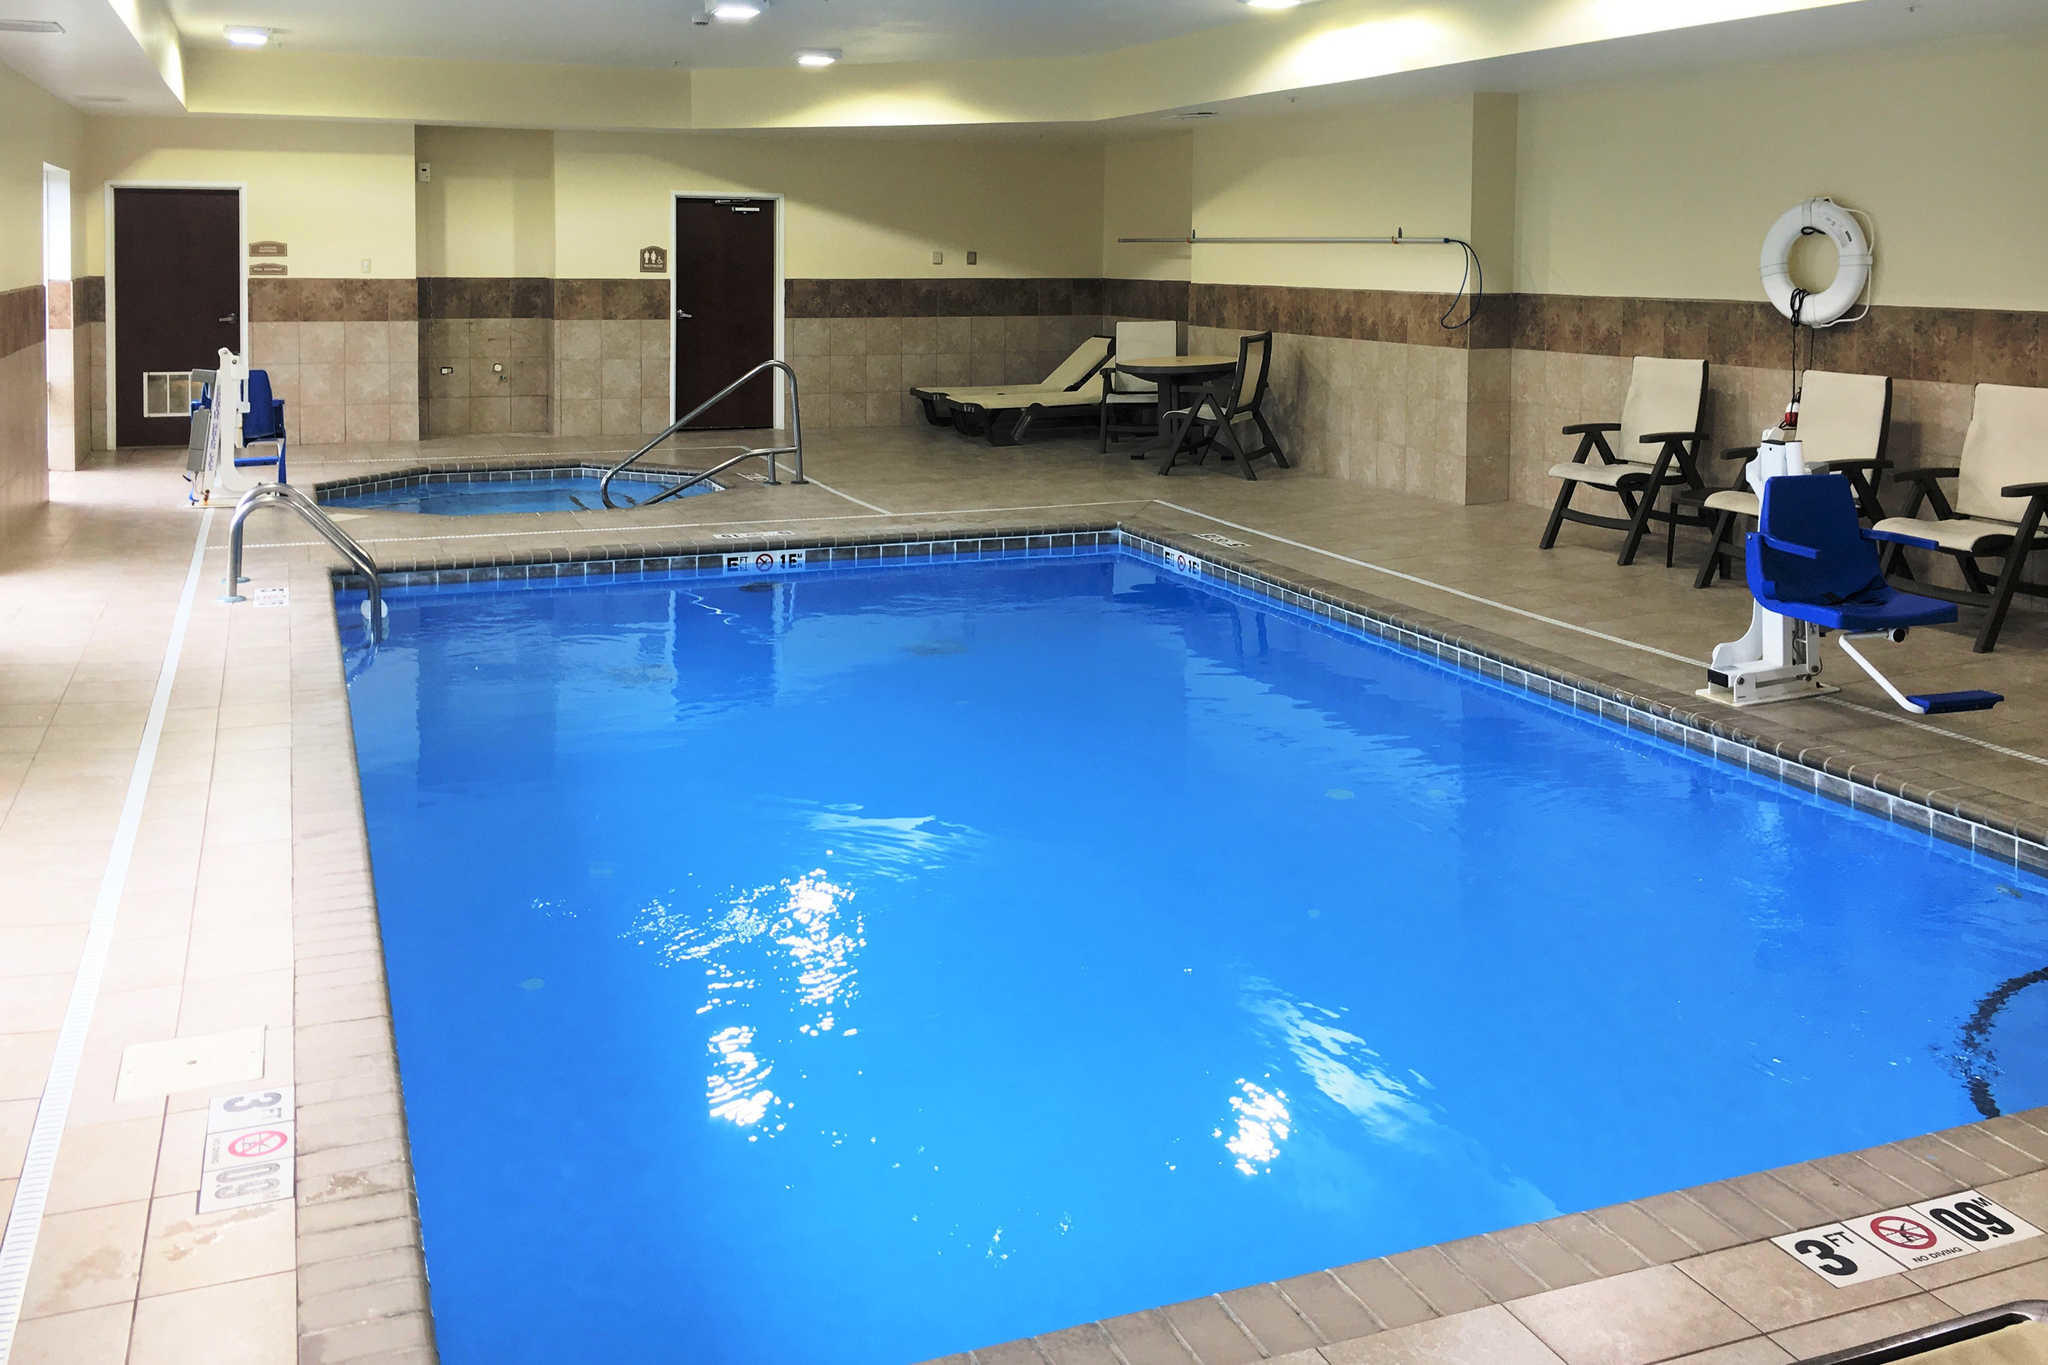 Comfort Inn Amp Suites Coupons Porter In Near Me 8coupons